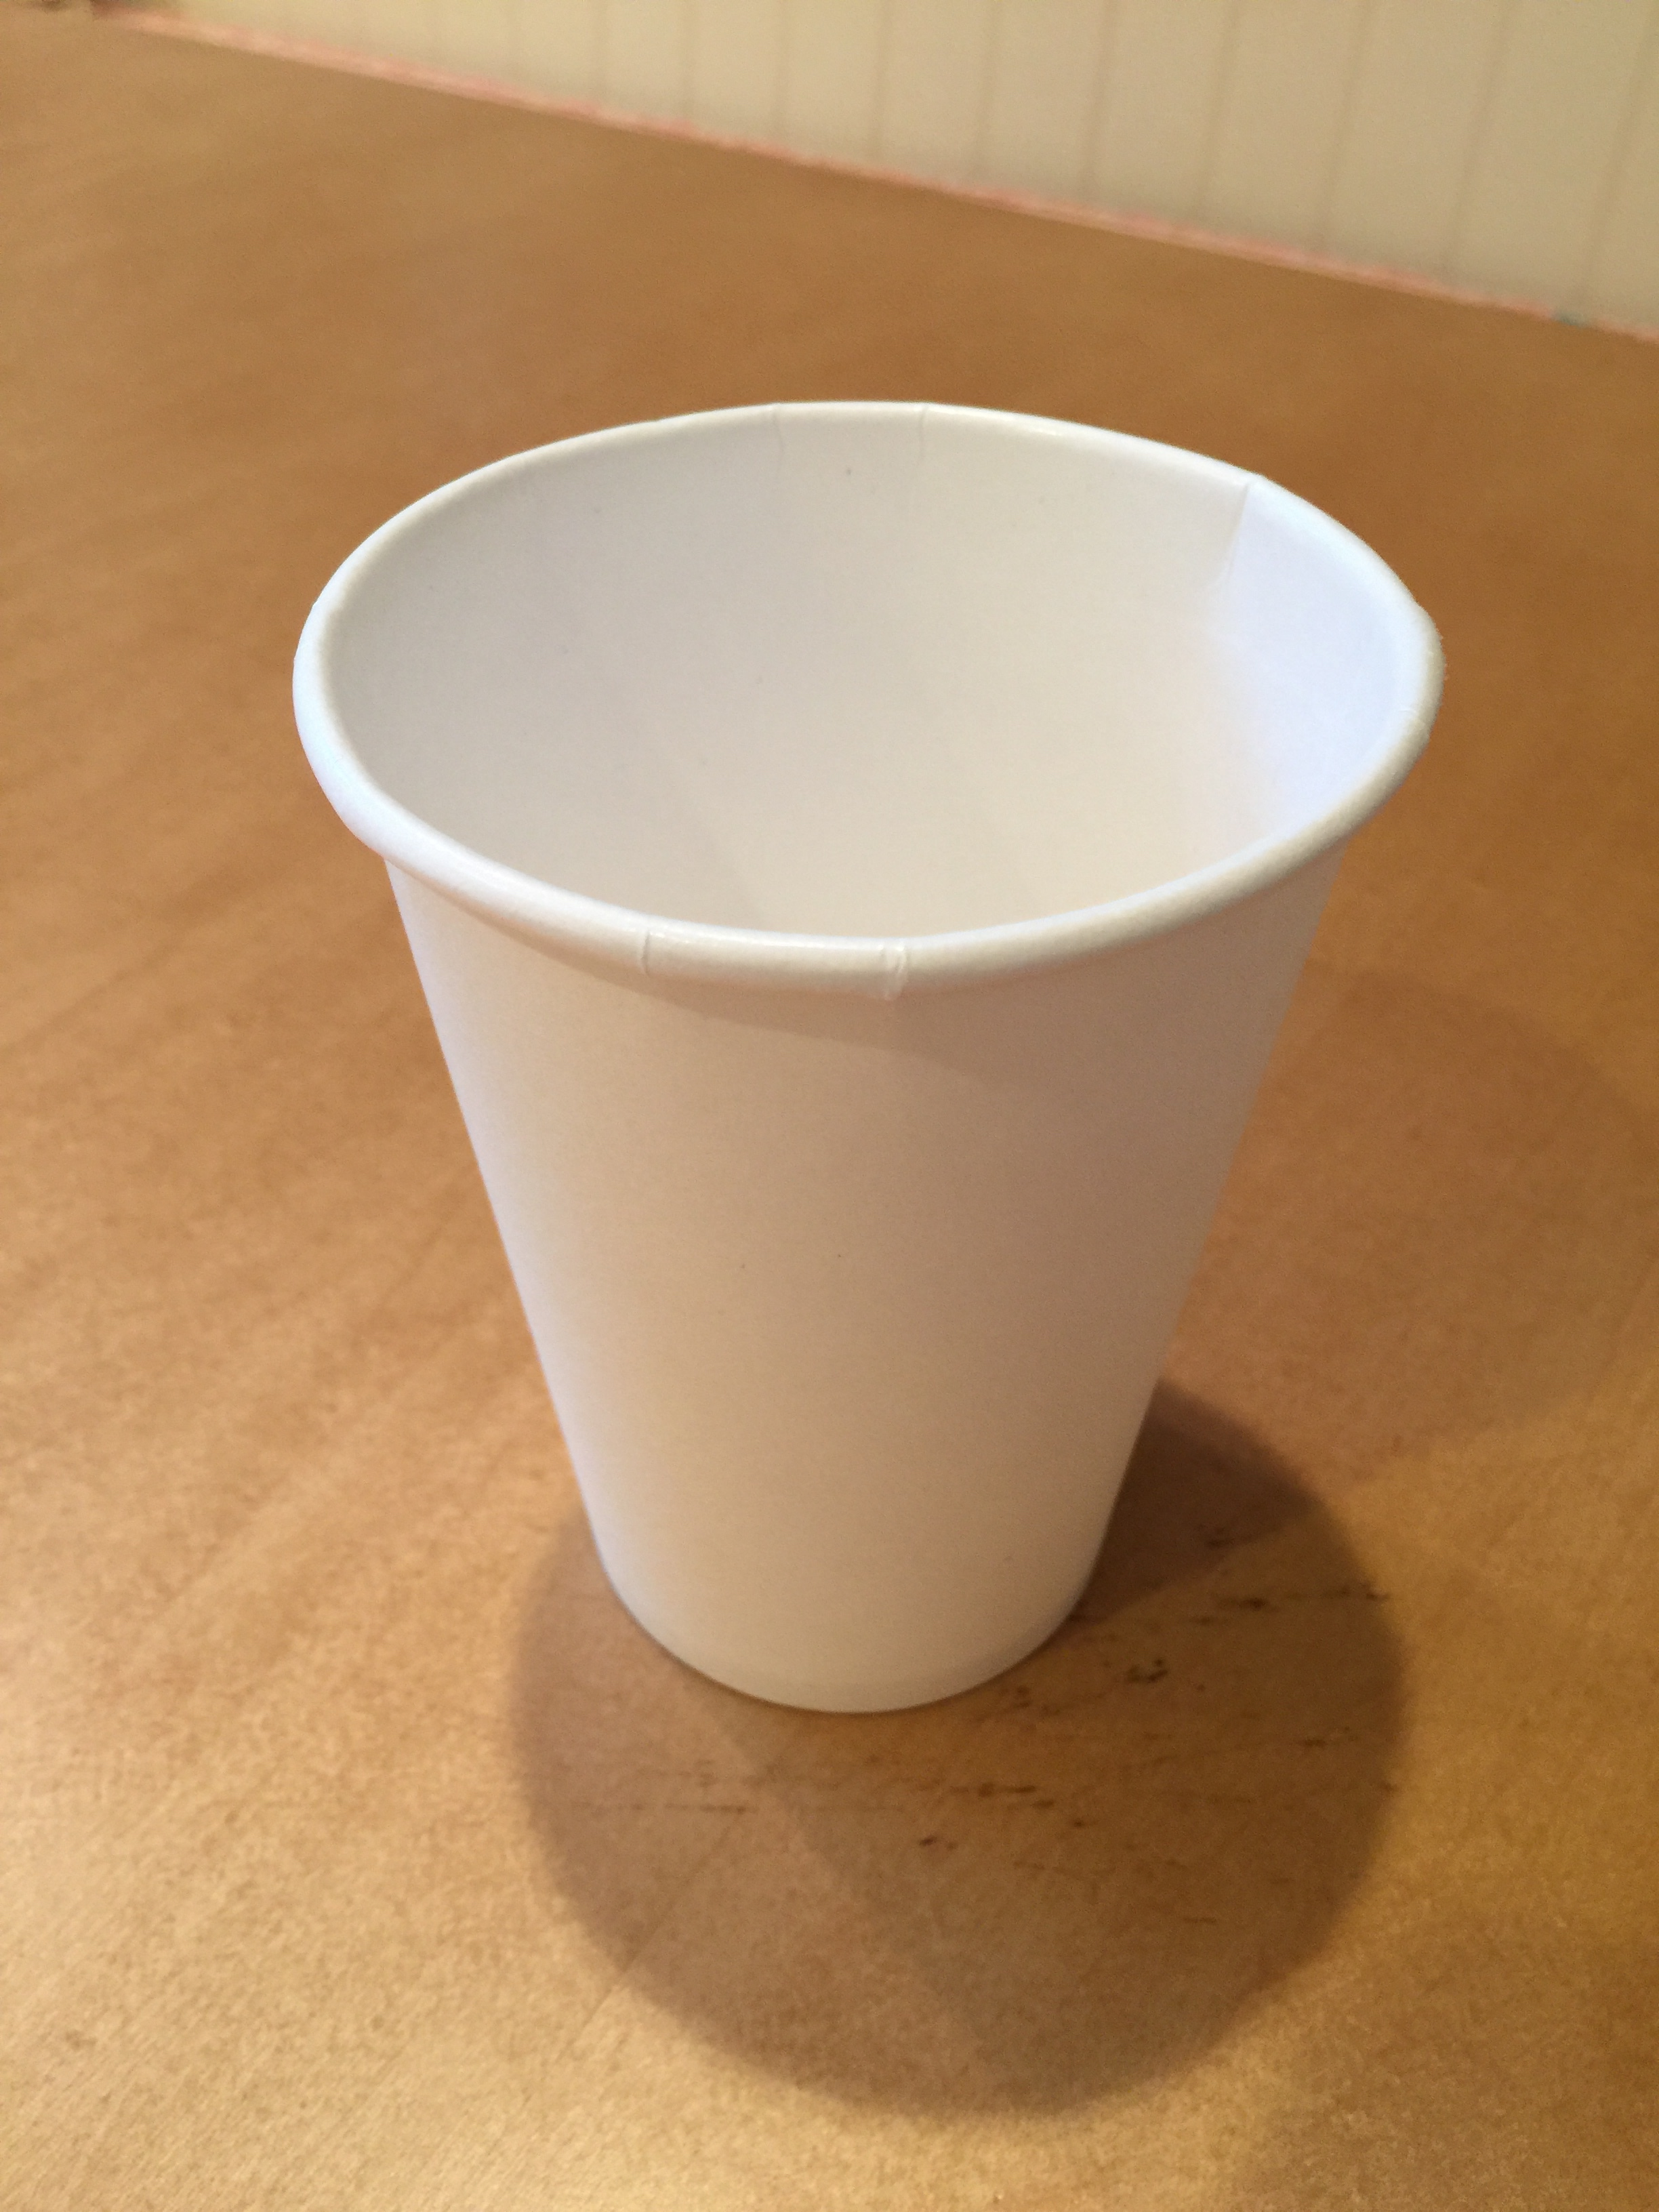 If I Listen With My Heart: Paper Cup Pop for Younger Children